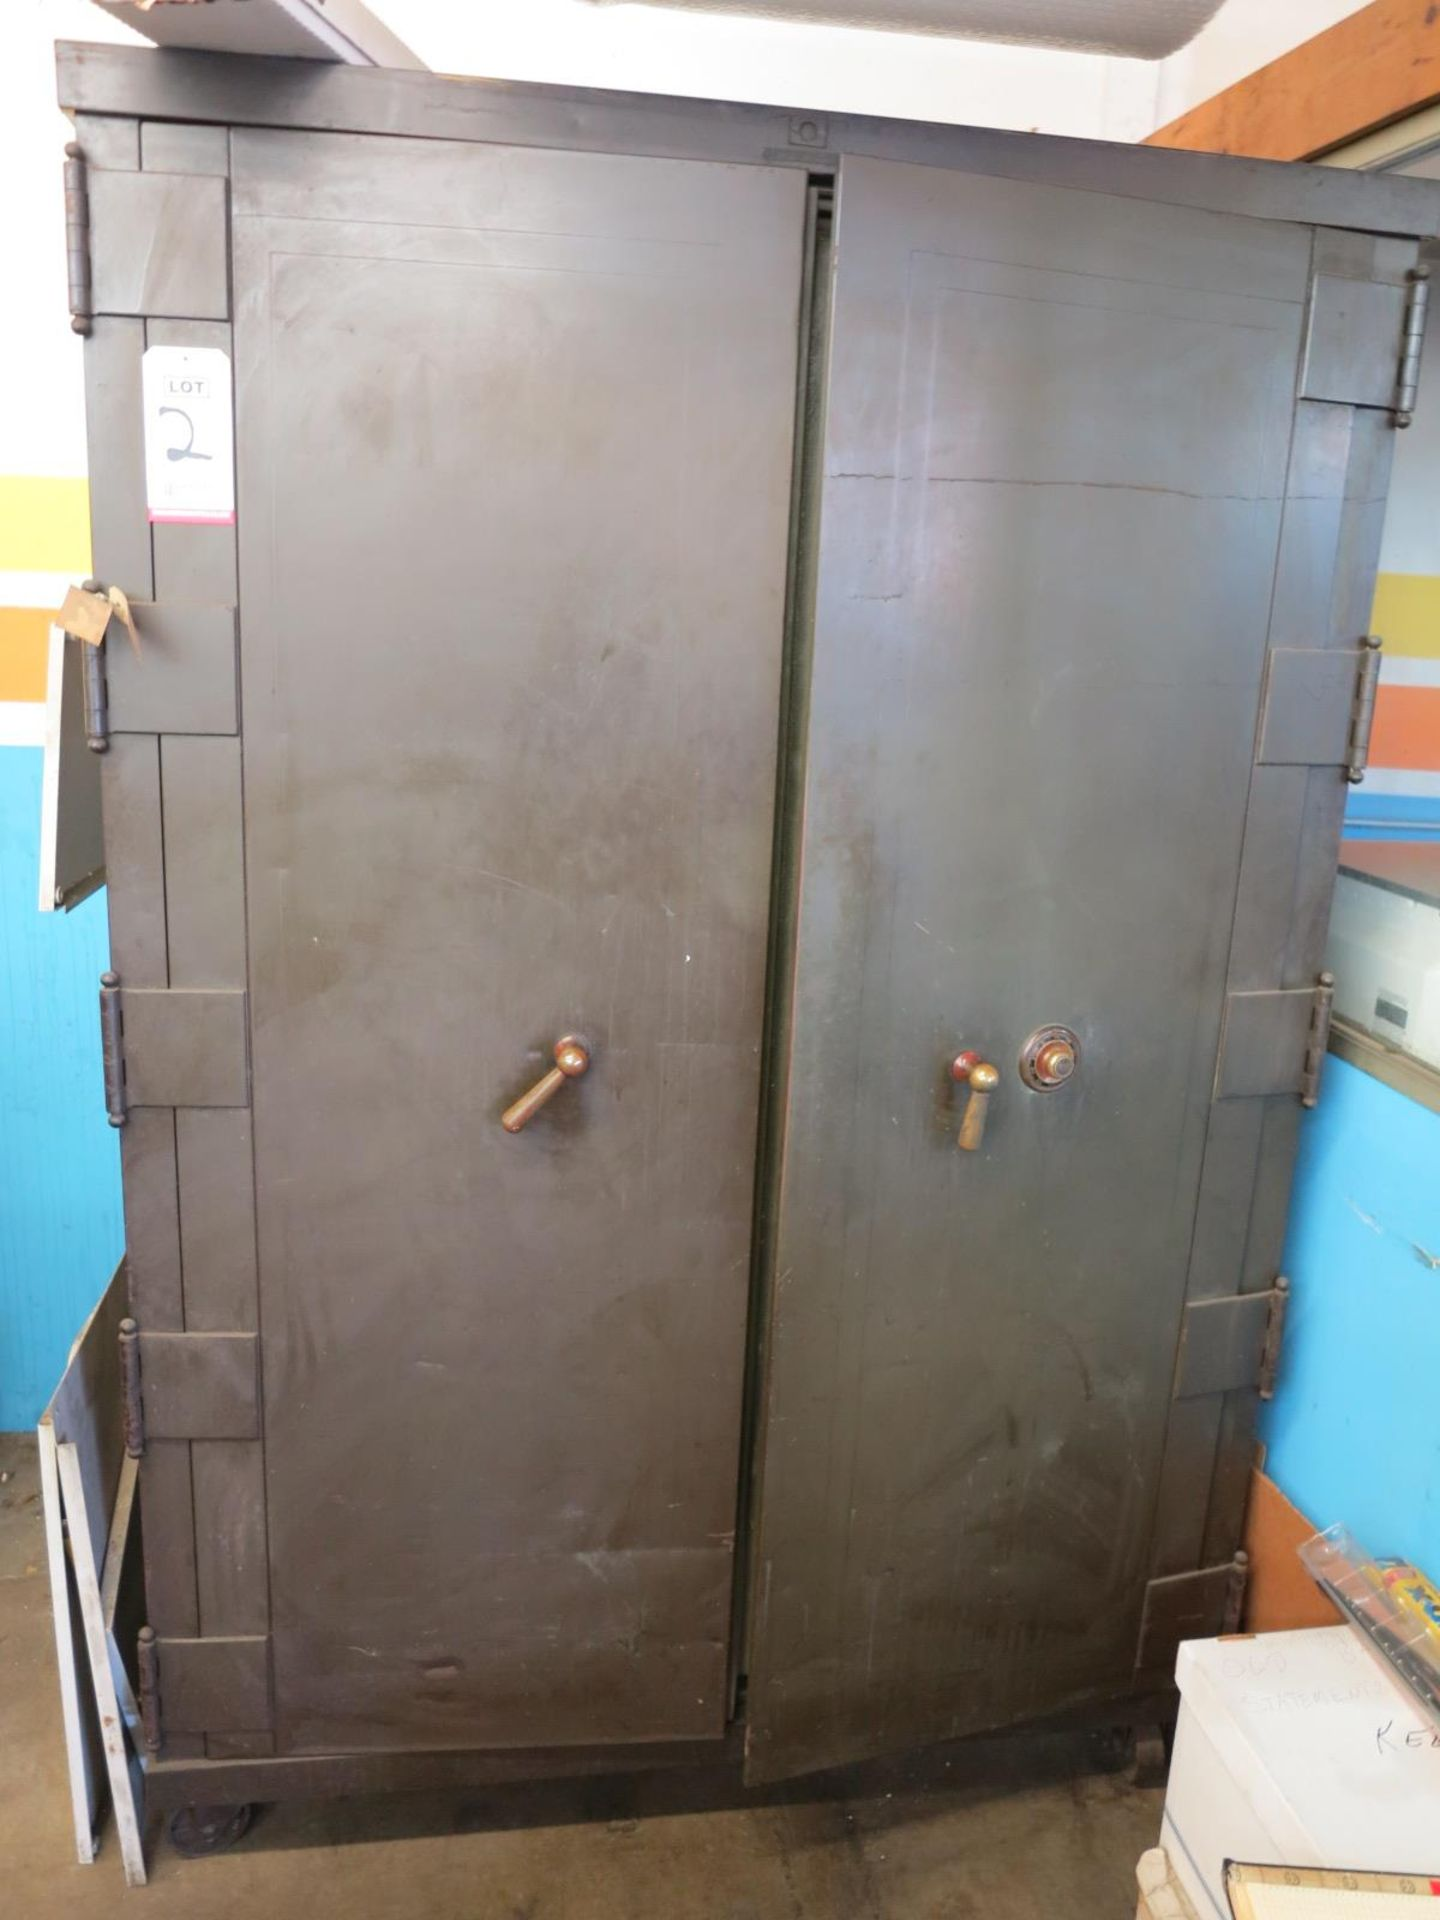 2-DOOR FLOOR SAFE ON STEEL CASTERS, W/ YALE COMBINATION DIAL LOCKING MECHANISM, OWNER WILL SUPPLY